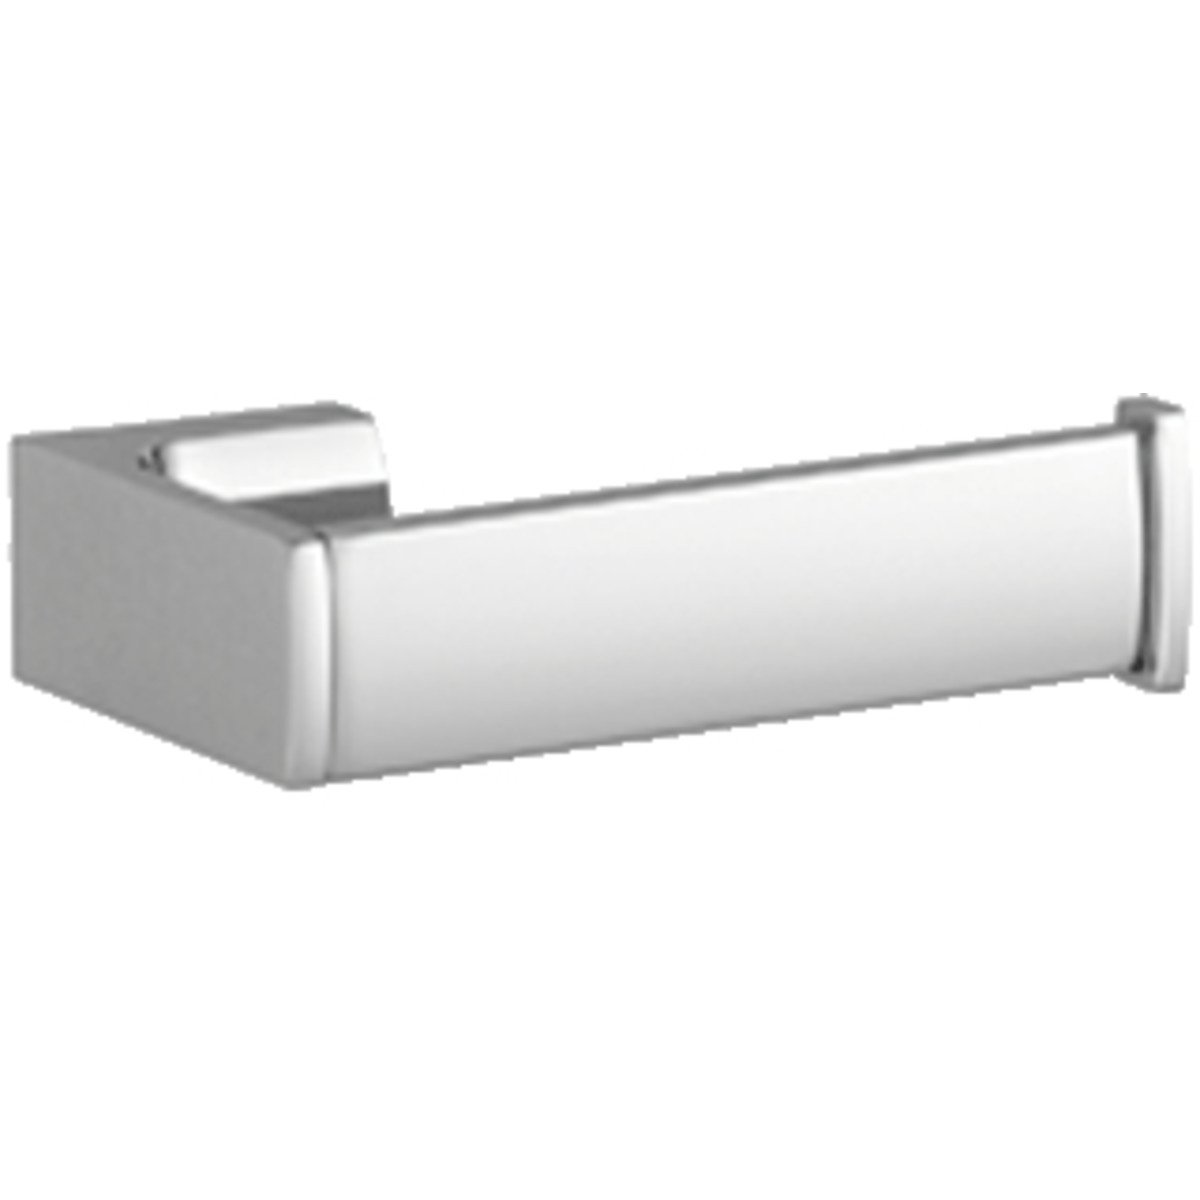 Villeroy et boch cult porte rouleau wc chrome 8350096000 for Porte jarretelle h m